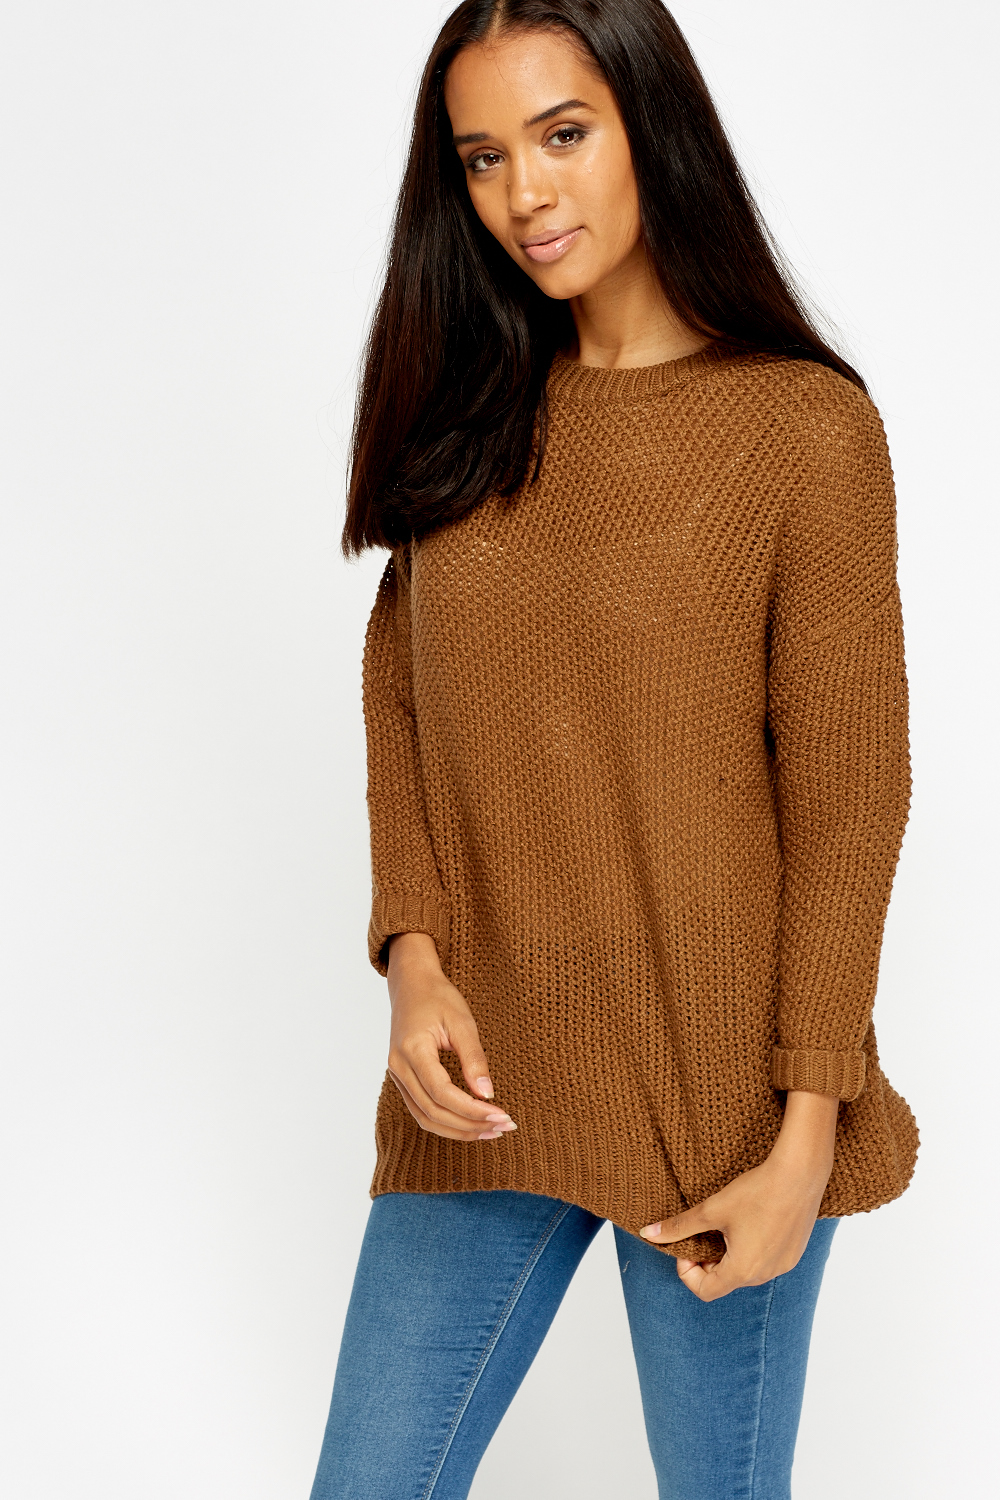 An oversized sweater and a crew neck sweater is a great addition to any wardrobe. They have become a staple fashion item for every fall and winter collection, reappearing year on year to keep you warm and cozy in the cold winter months.